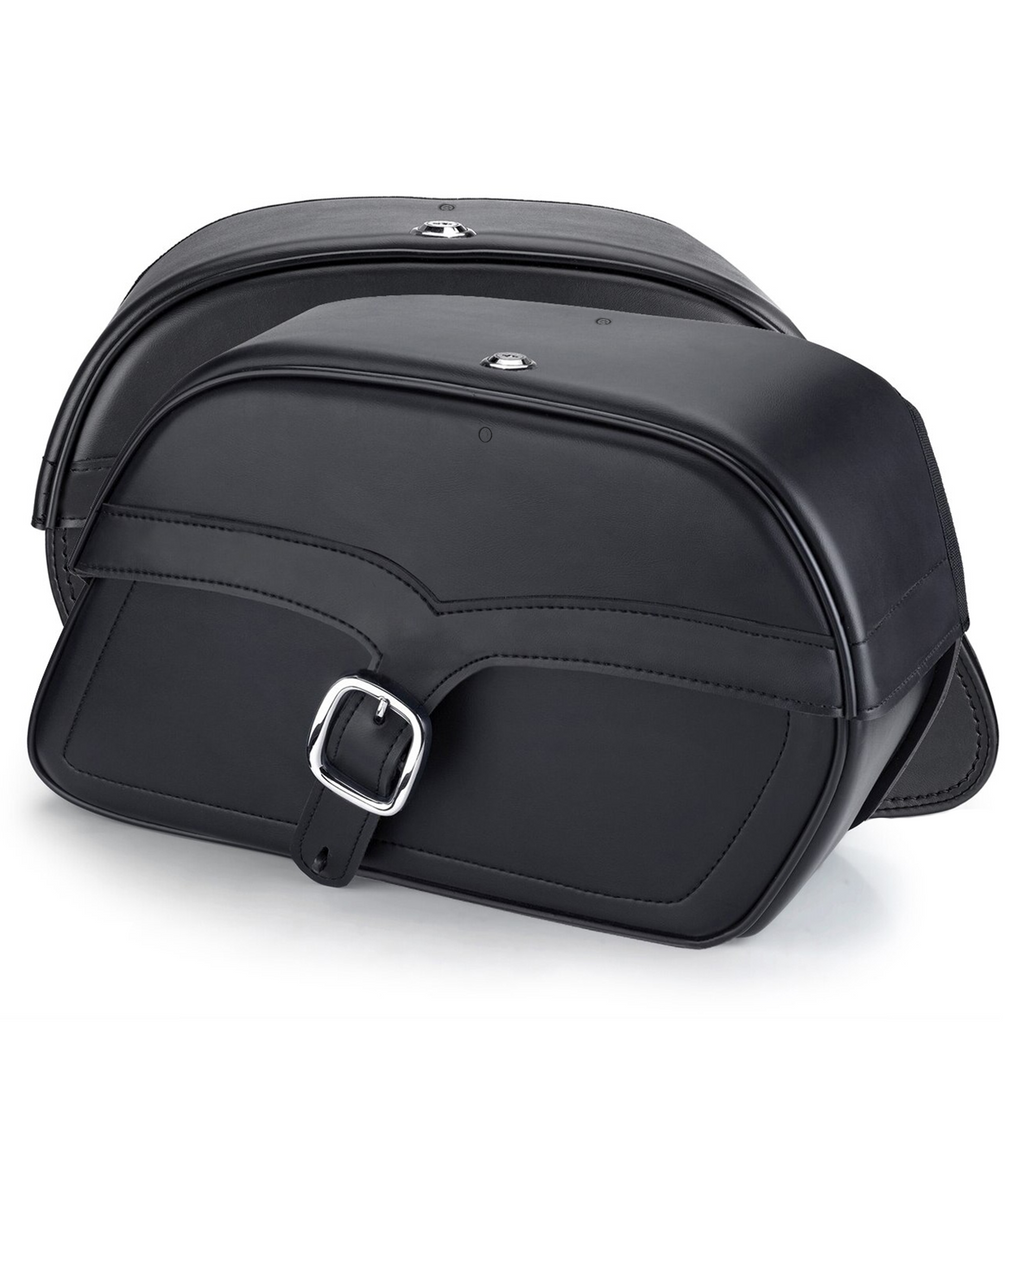 Victory High Ball Medium Charger Single Strap Motorcycle Saddlebags both bags view